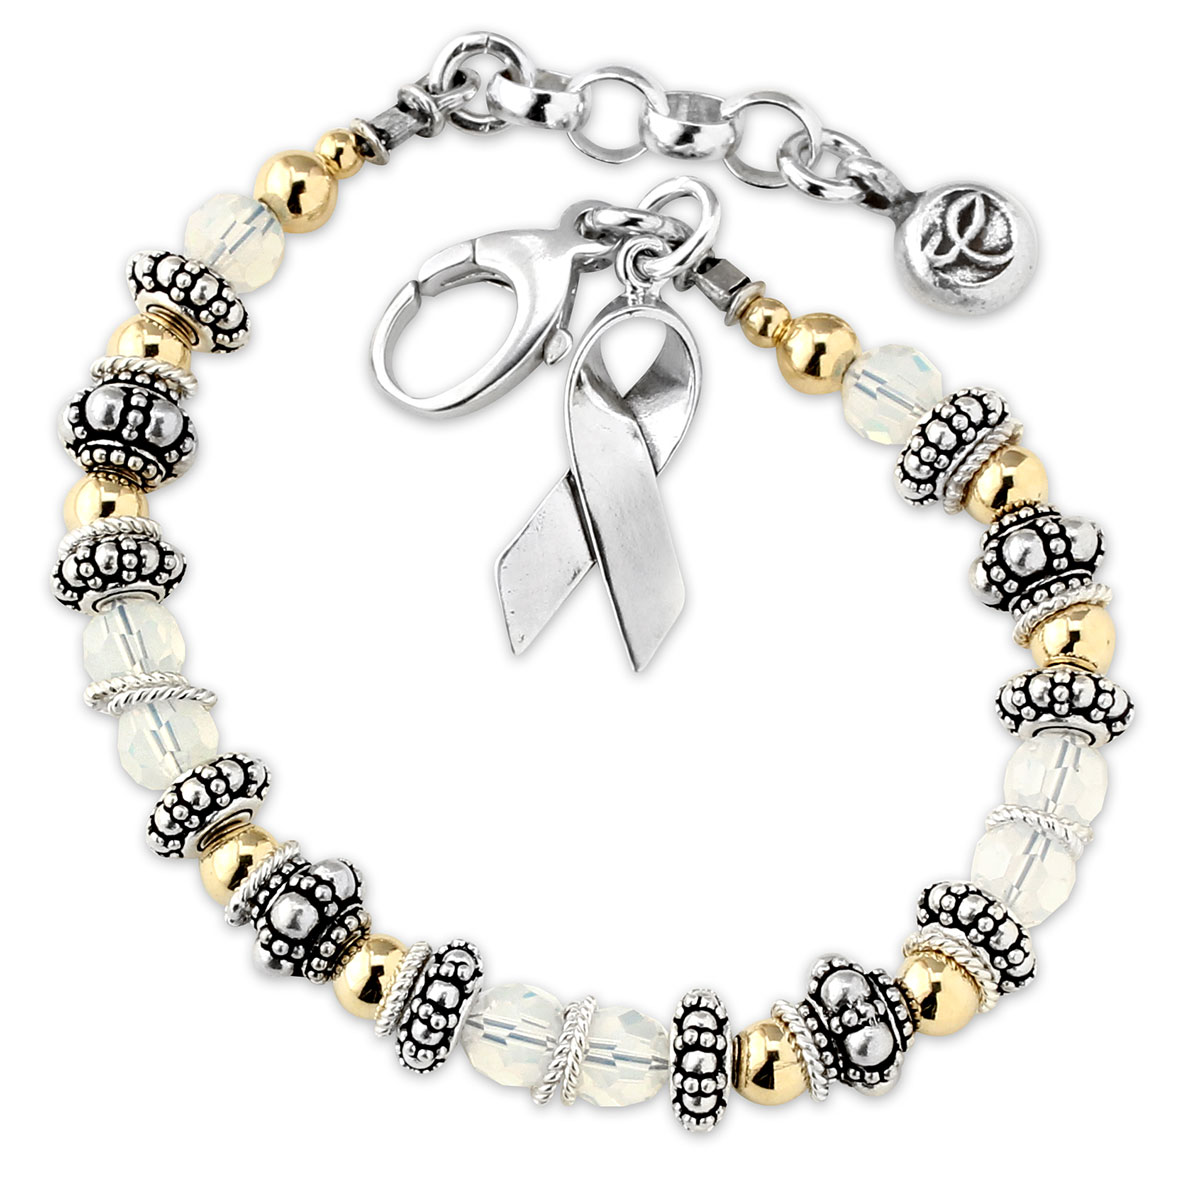 Spectacular Awareness Bracelet